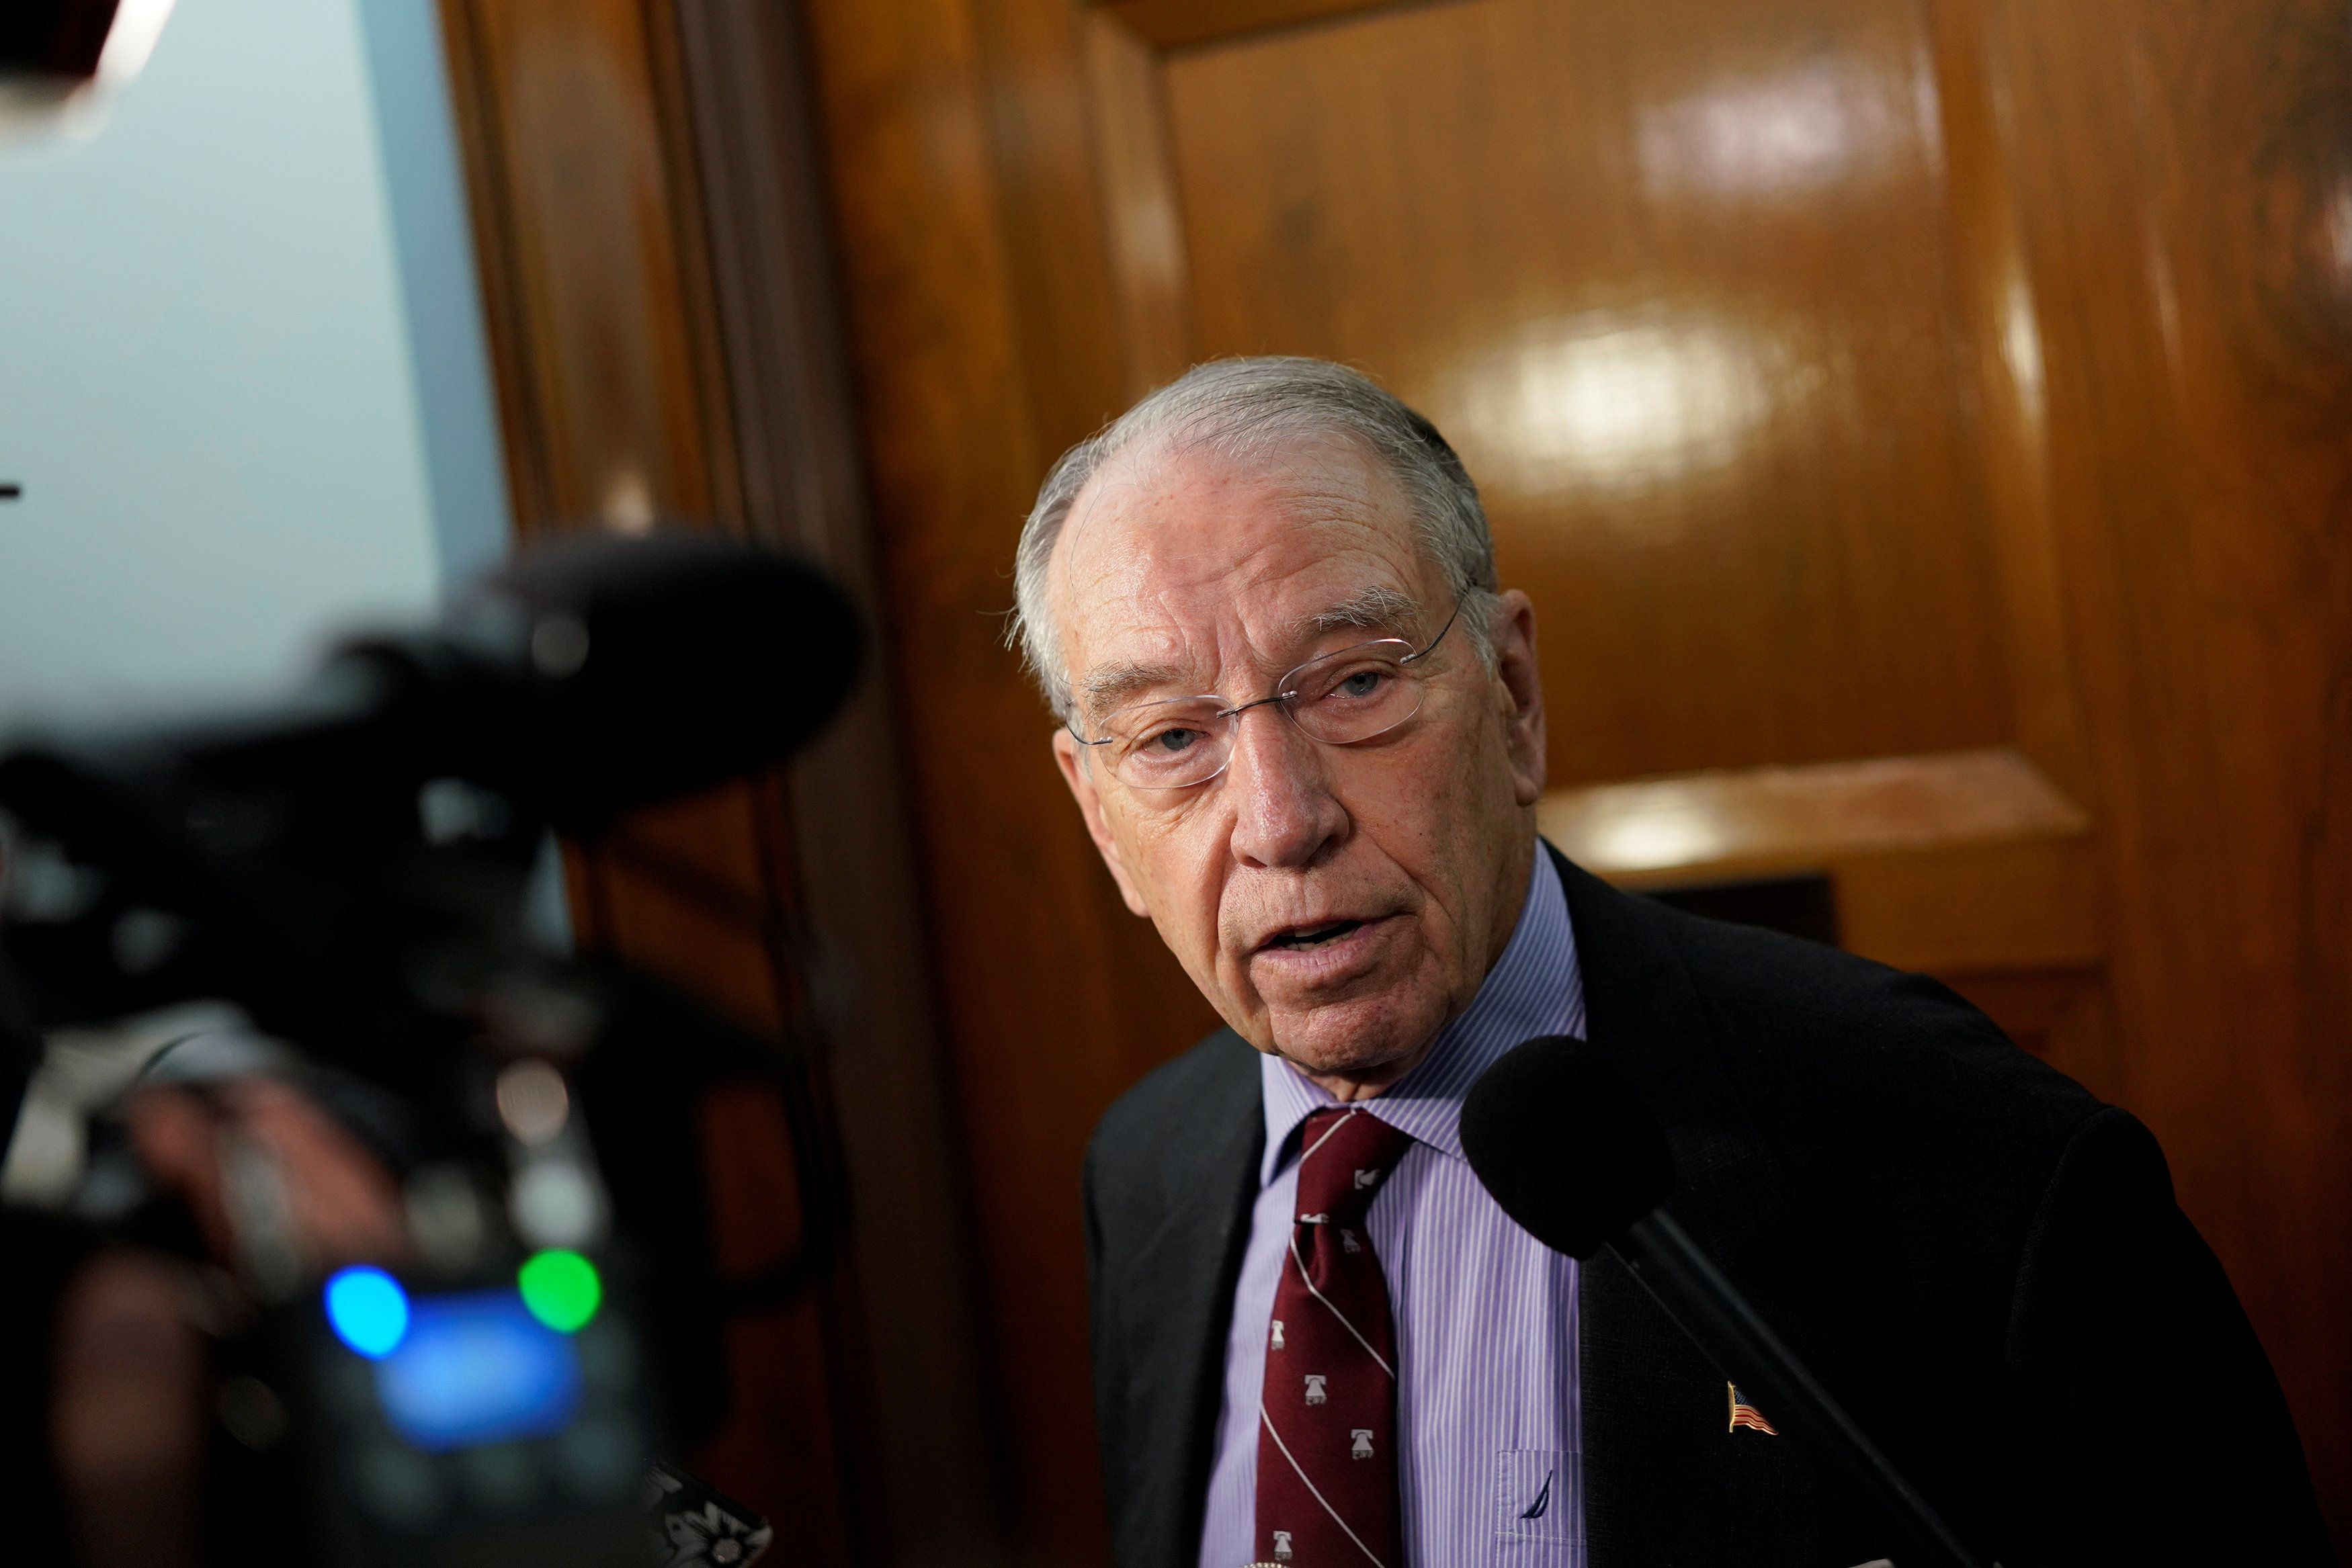 Sen. Chuck Grassley (R-Iowa) has been working since 2015 to reauthorize the Juvenile Justice and Delinquency Prevention Act.